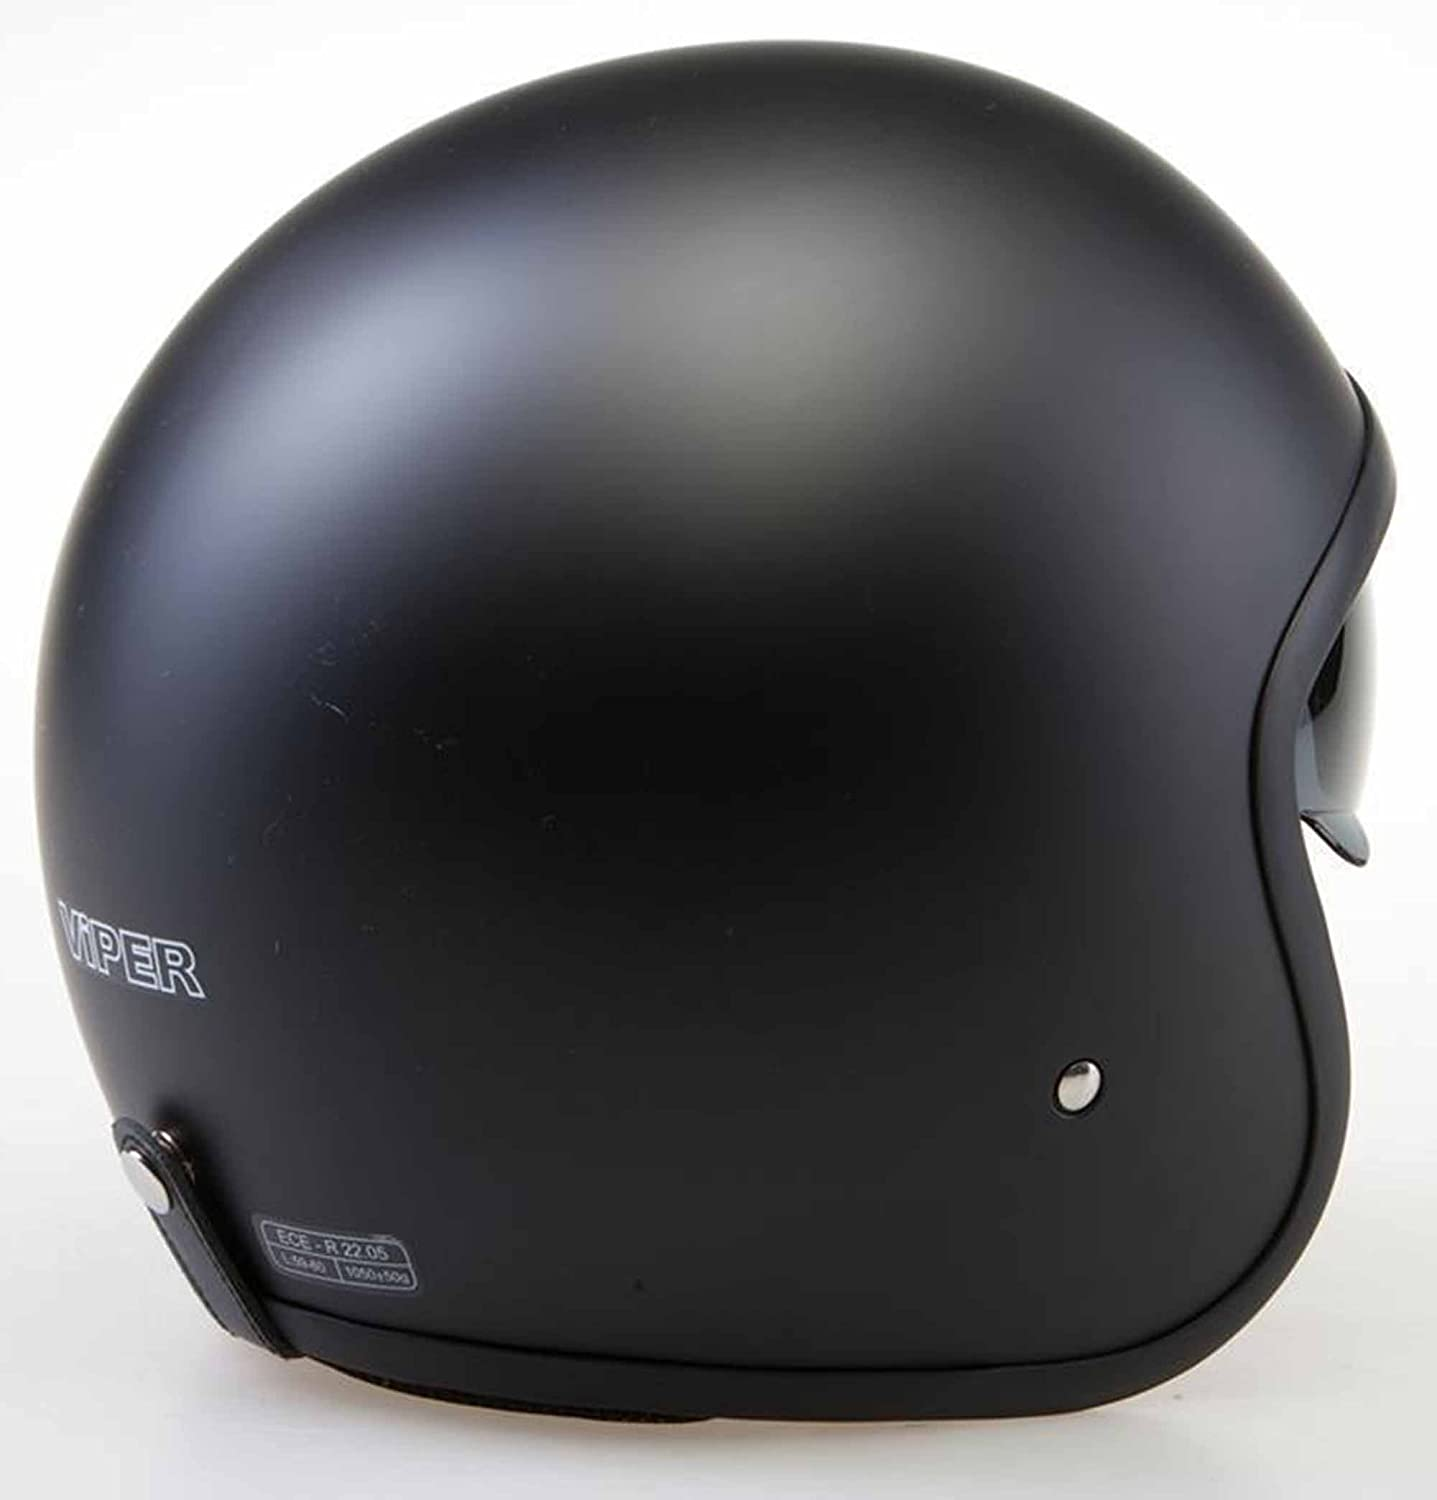 Viper ECE22.05 Approved Motorcycle Motorbike Moped Cruise Touring Travellers Helmet Open Face Jet Matt Black